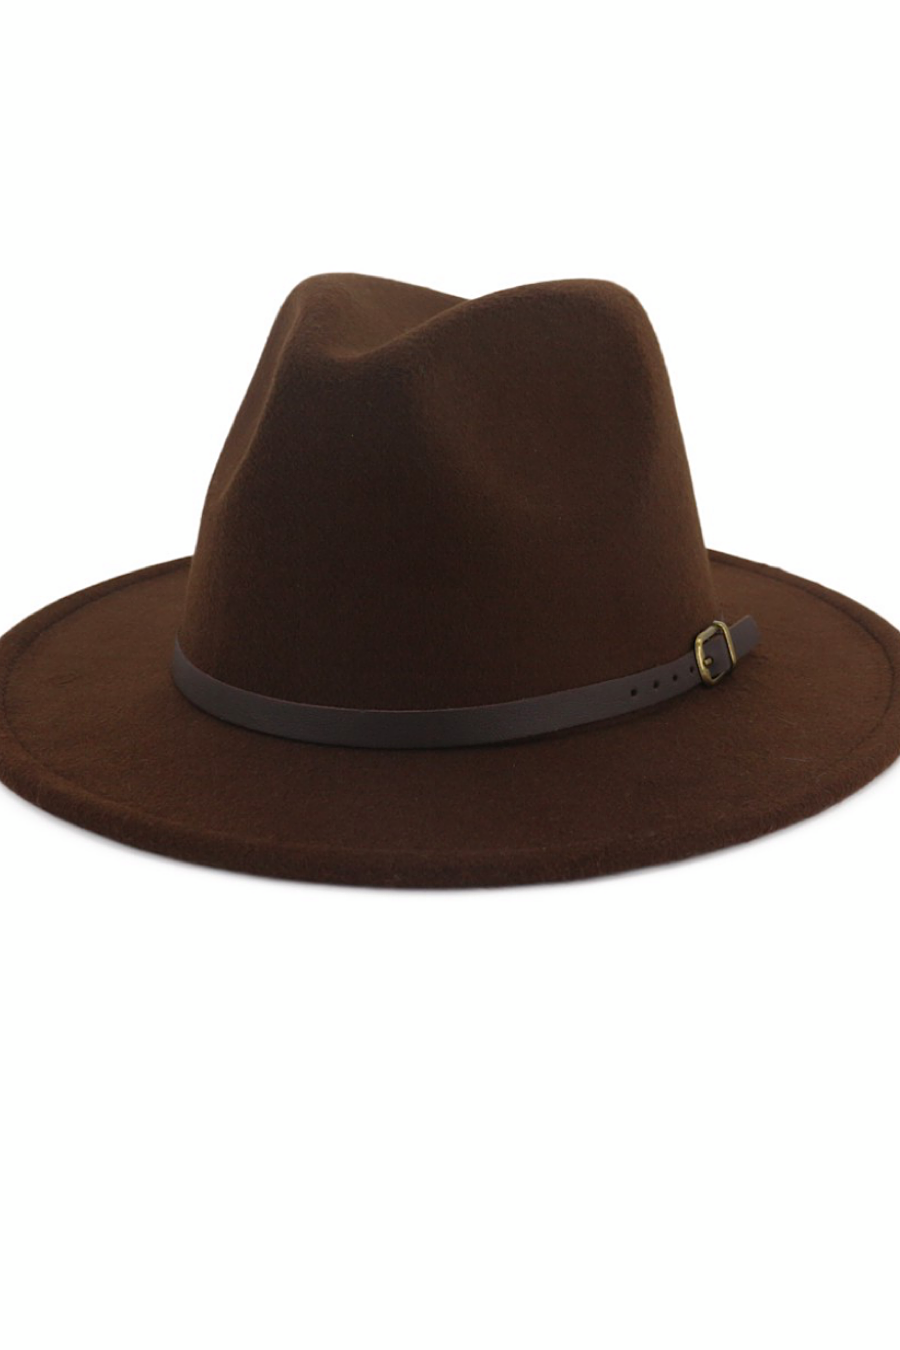 Fedoras with Dk Brown Belt in Camel, Wine, Coffee